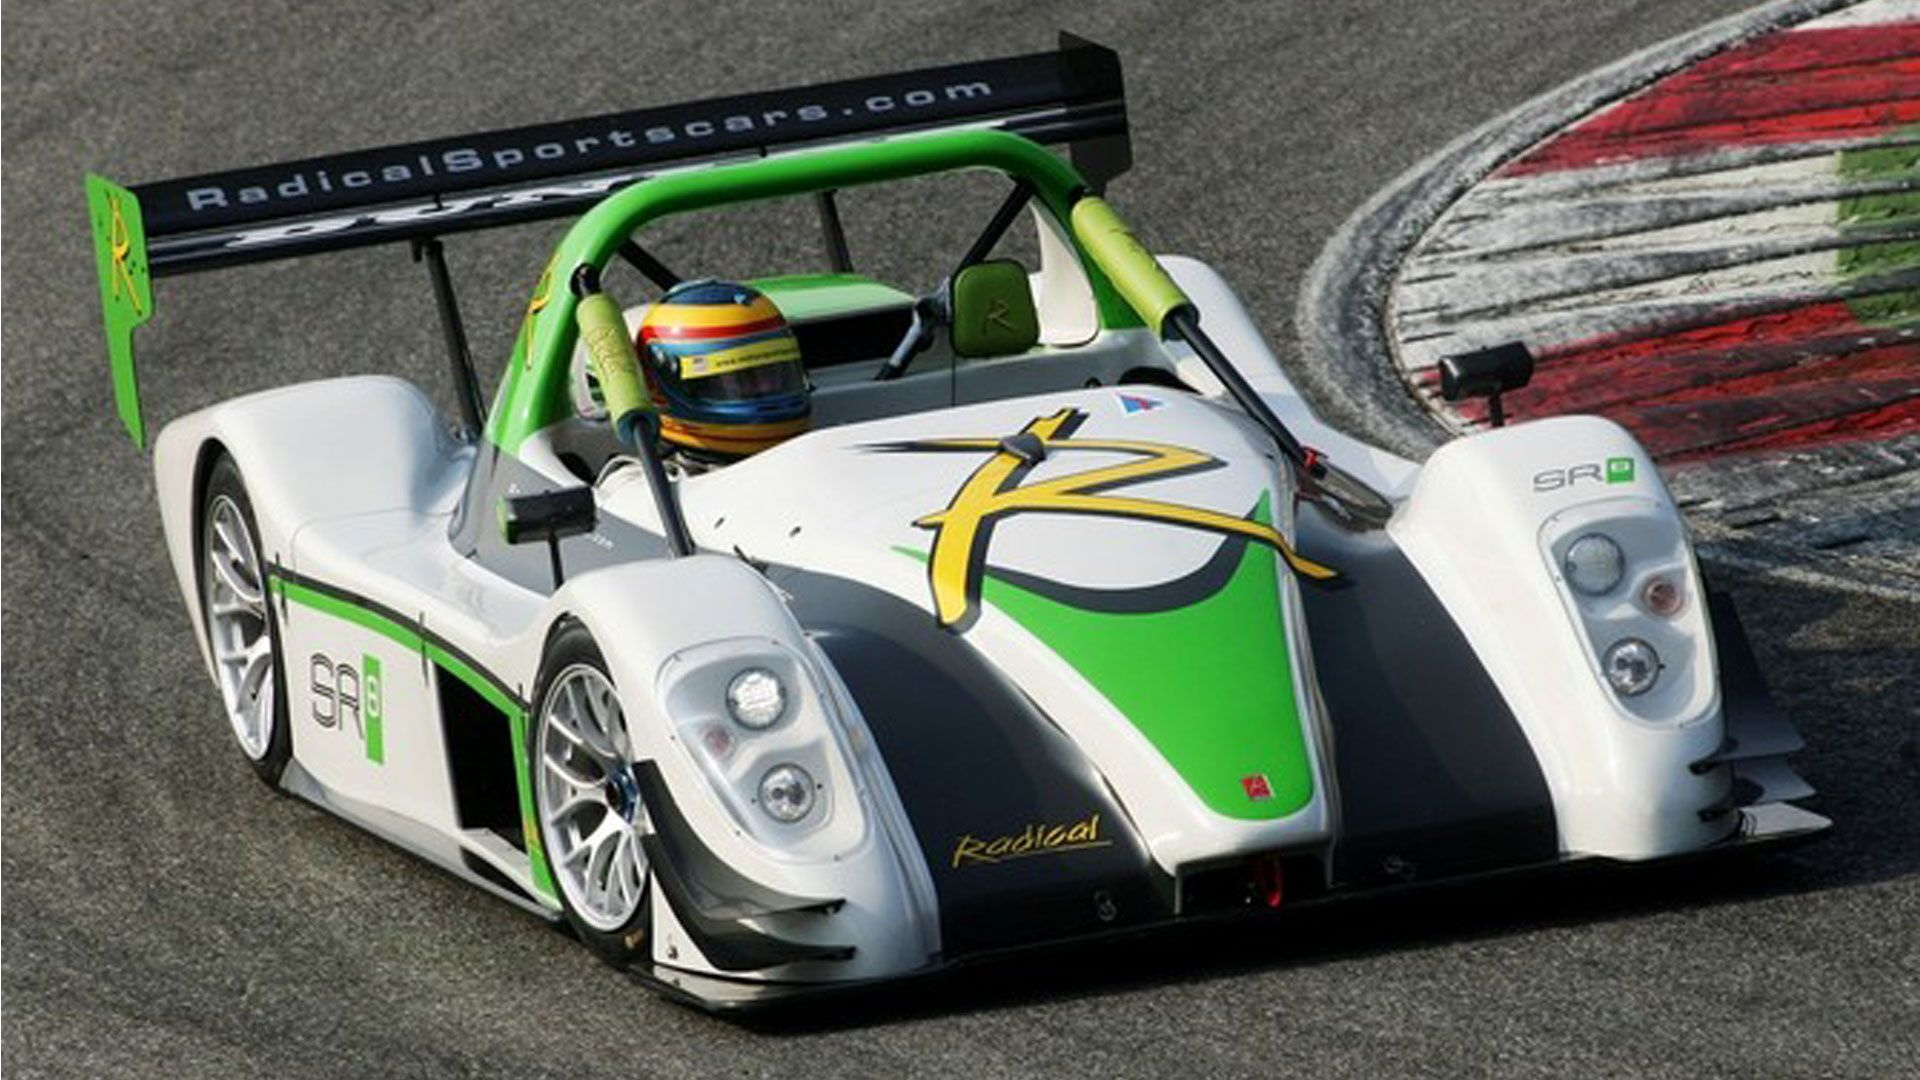 2012 Radical SR8 RX is going to release a car from a company that ...